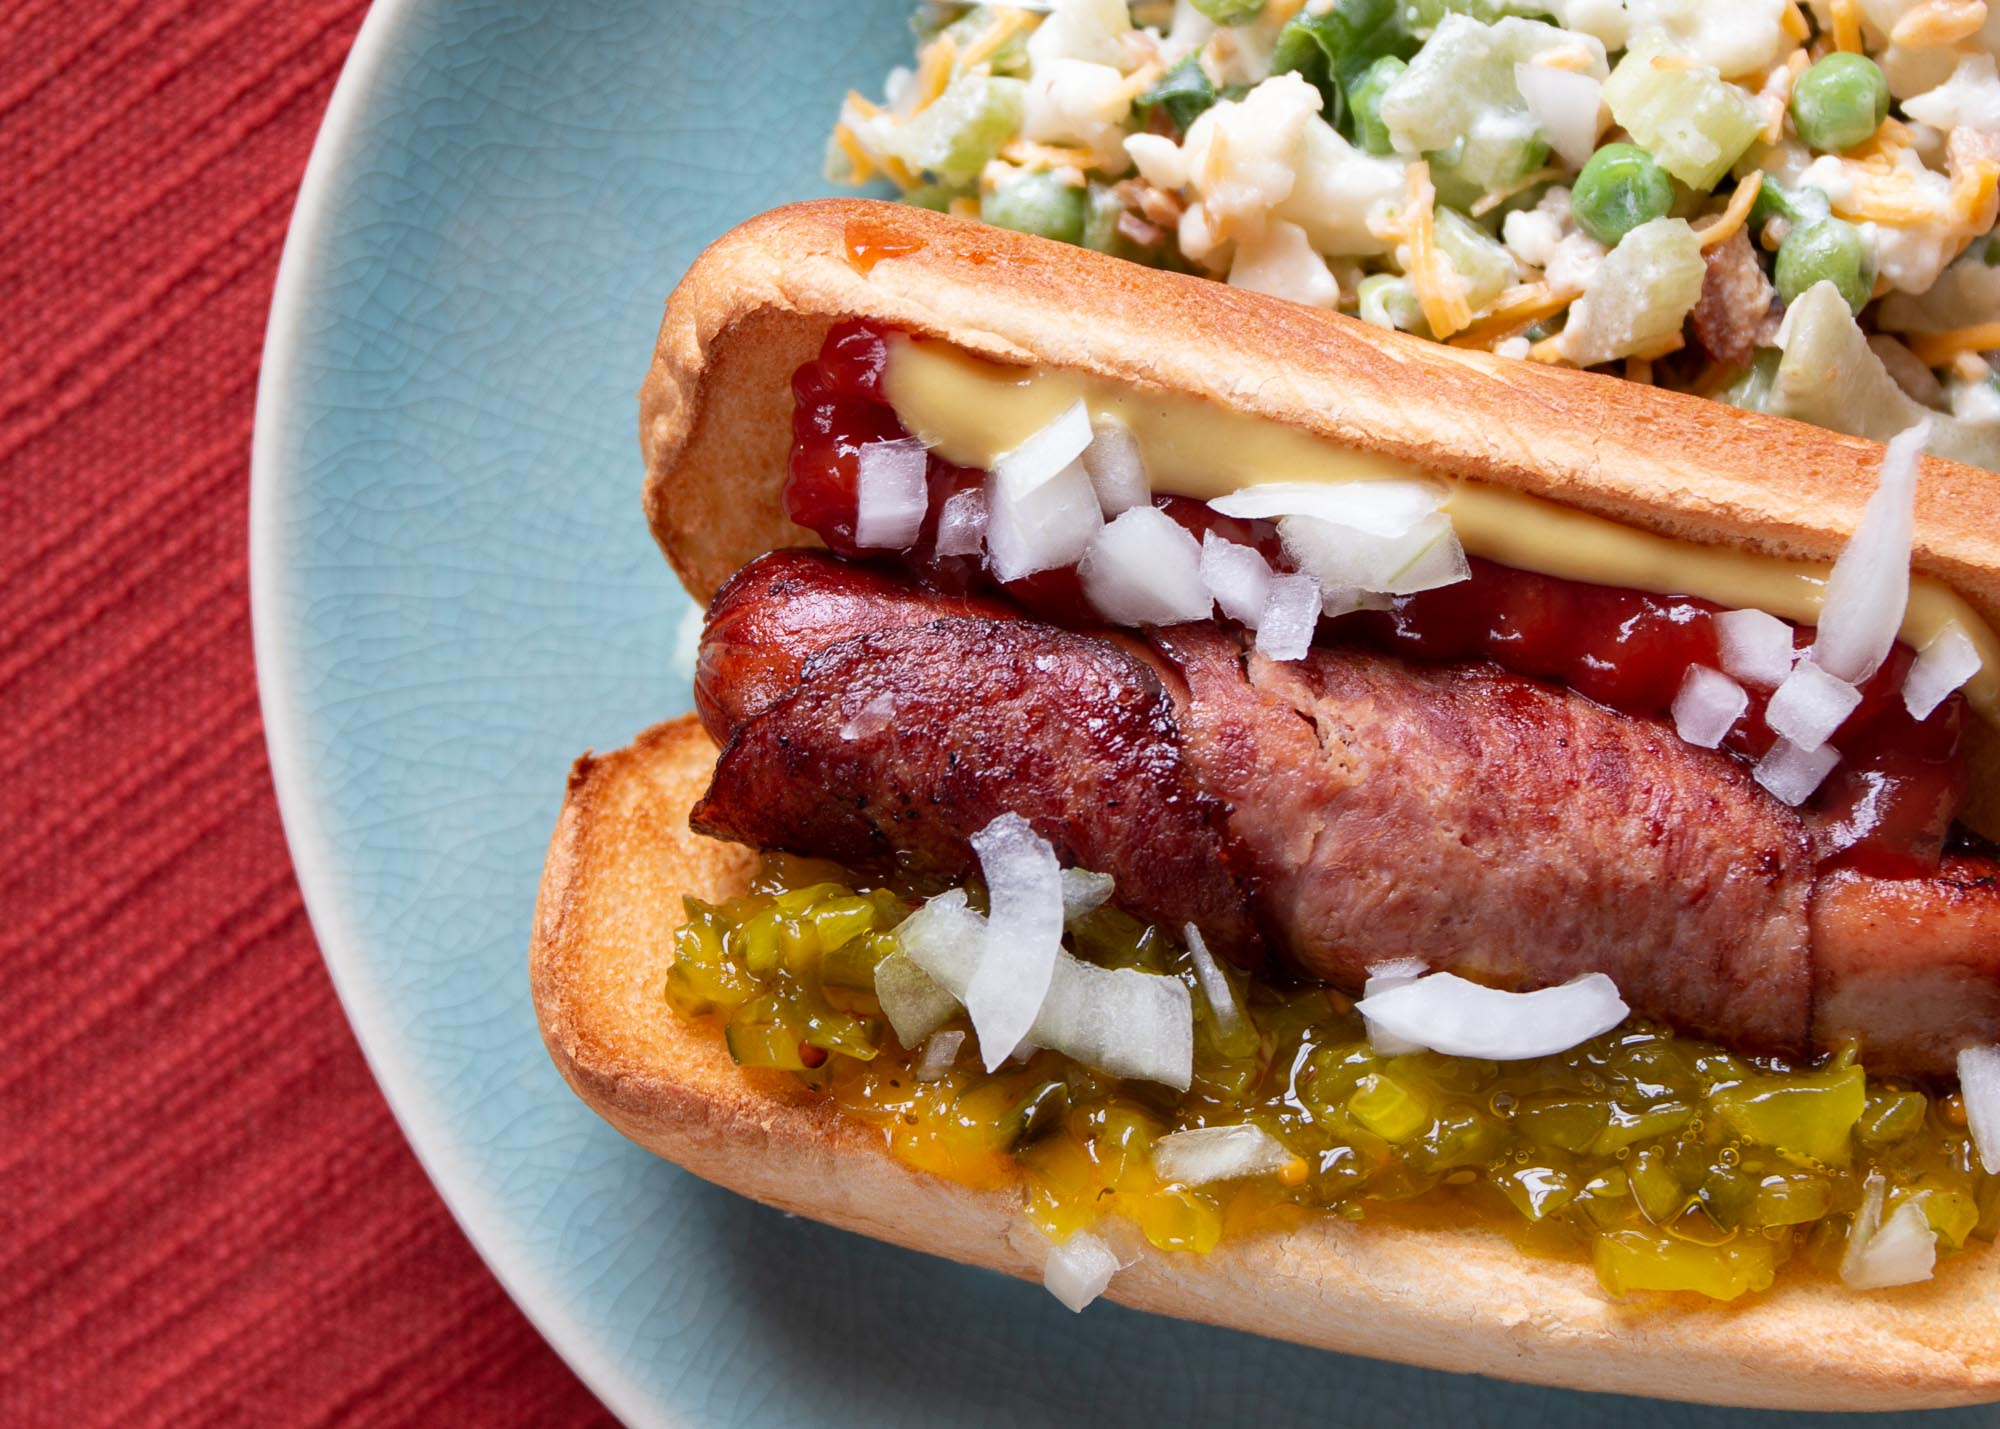 More Hot Dog Recipes and Tips